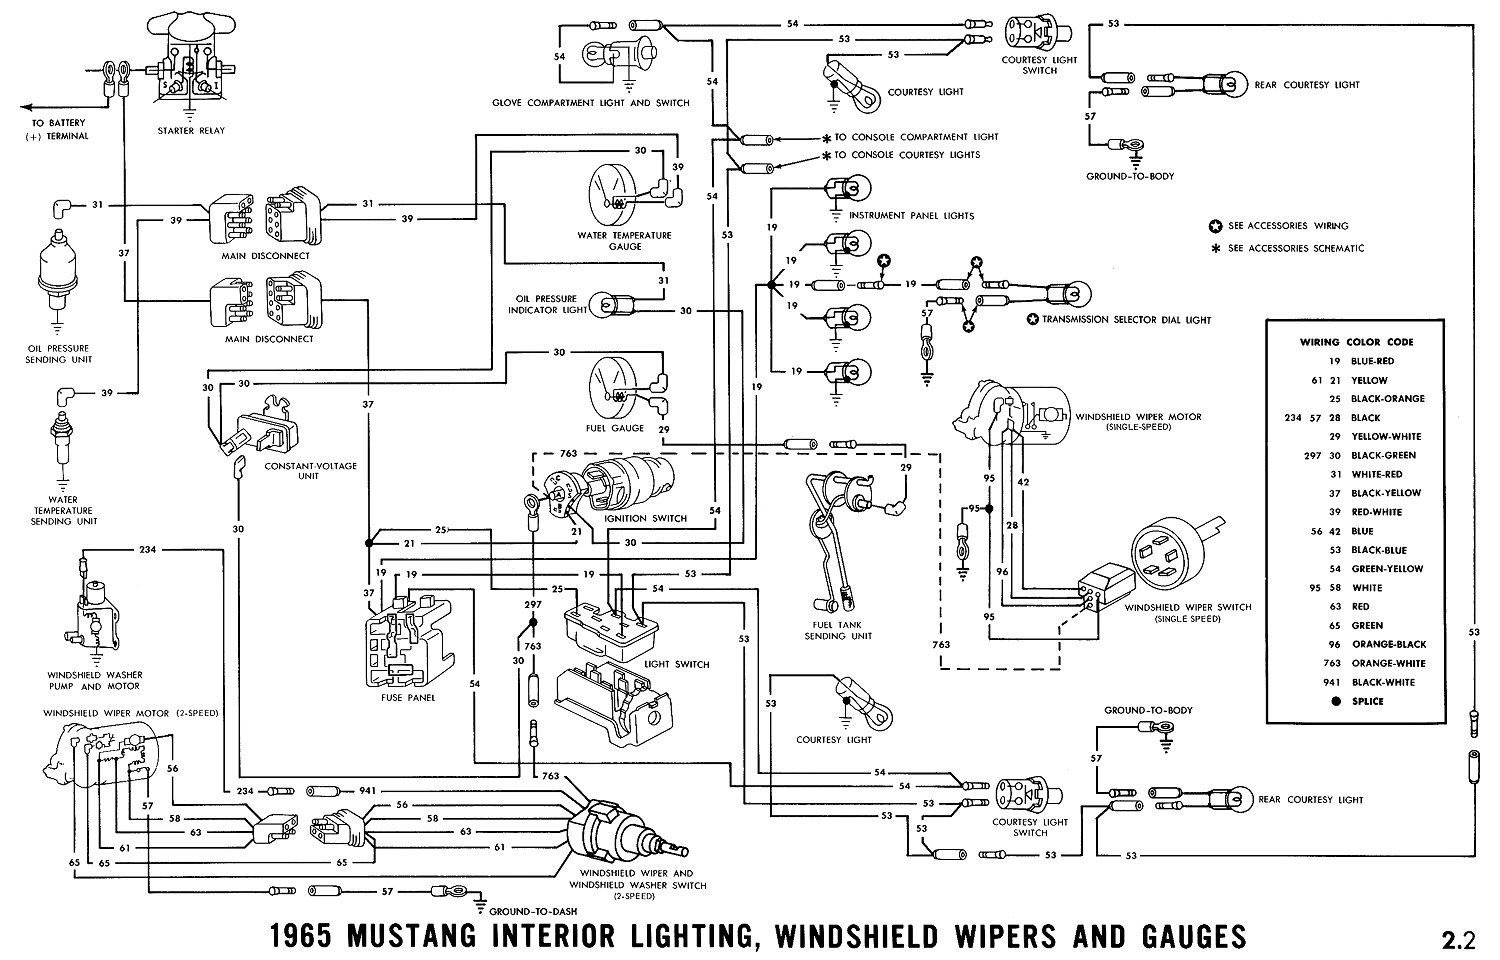 1965g 1965 mustang wiring diagrams average joe restoration 1965 mustang turn signal wiring diagram at soozxer.org